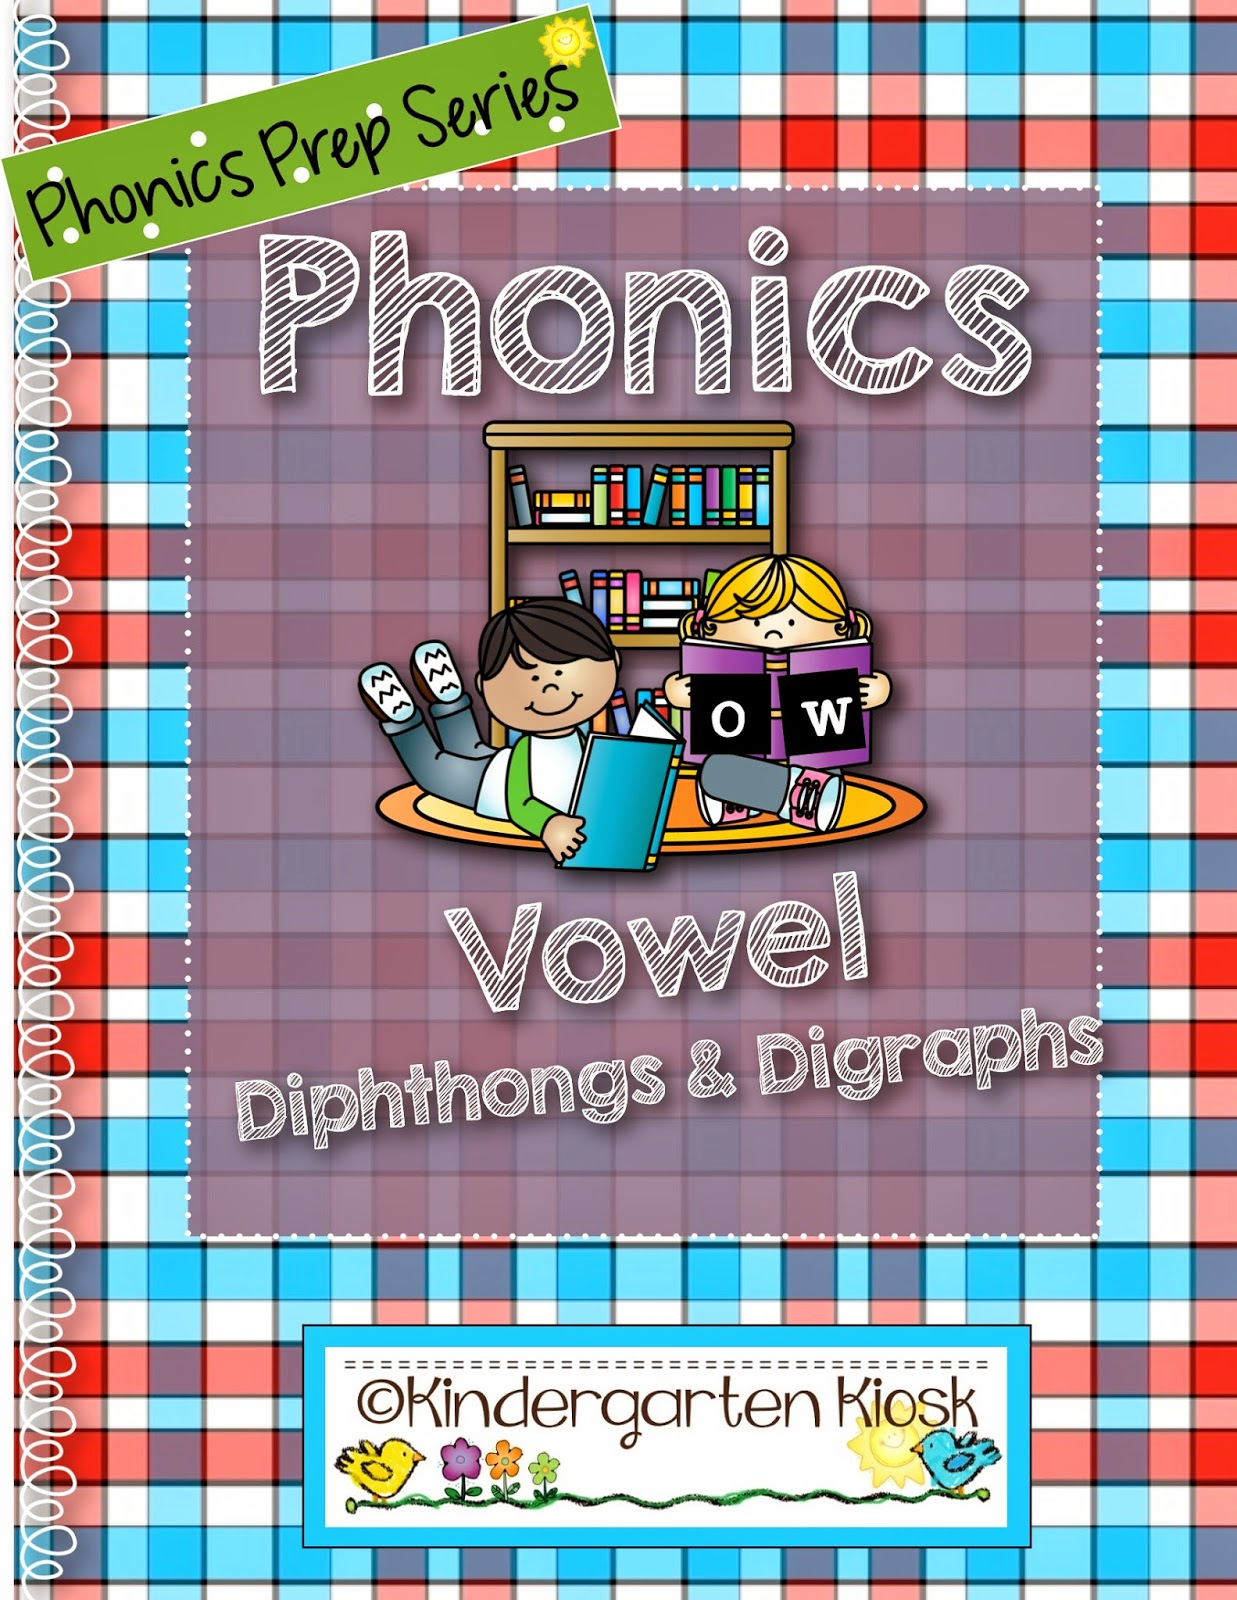 Kindergarten Kiosk Phonics Prep Vowel Digraphs And Diphtongs